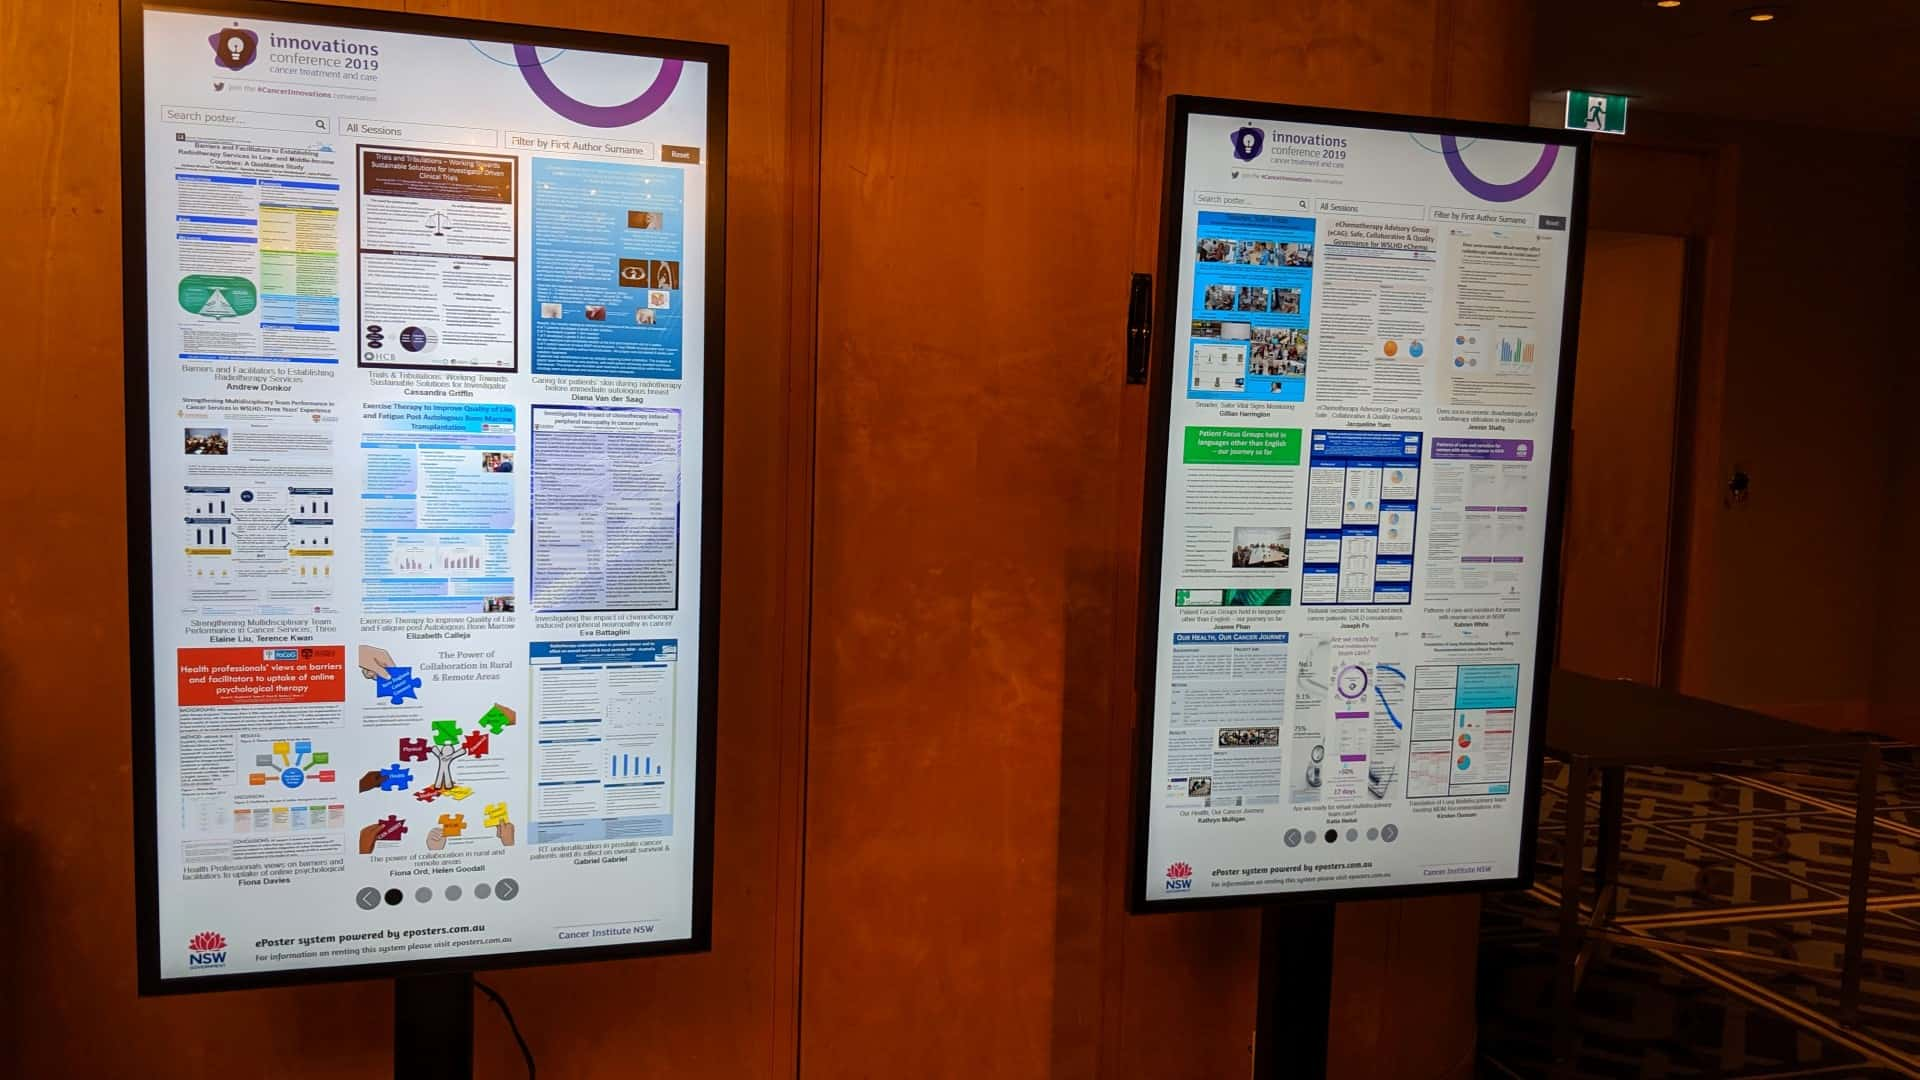 Advertise Me Interactive Digital Signage - ePosters Cancer Institute NSW Conference